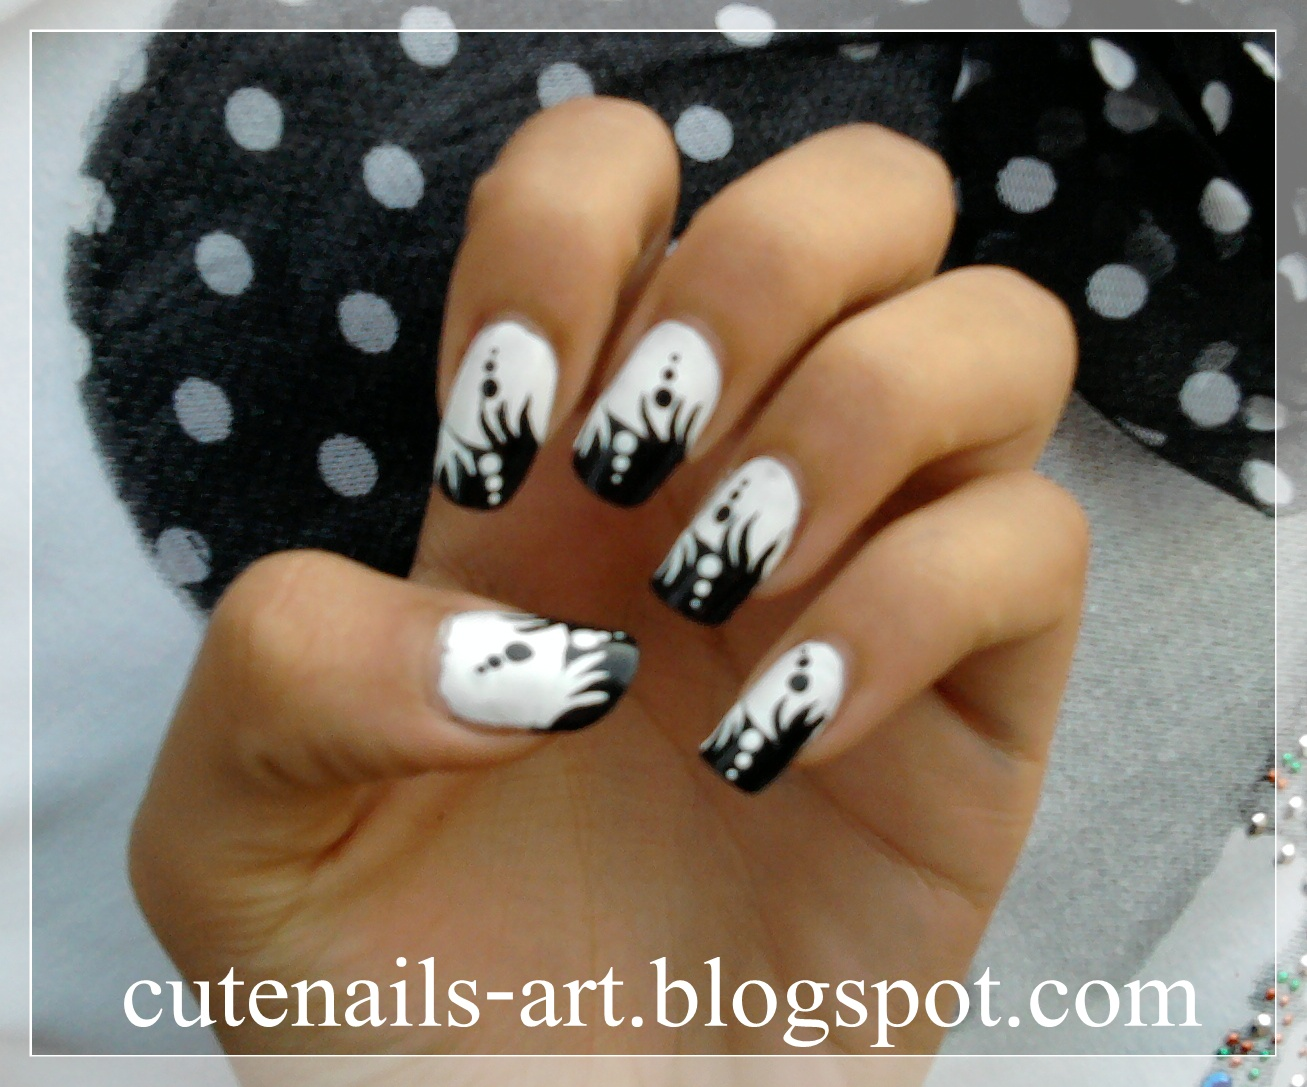 Base coat and using white nail polish paint half of your nails black